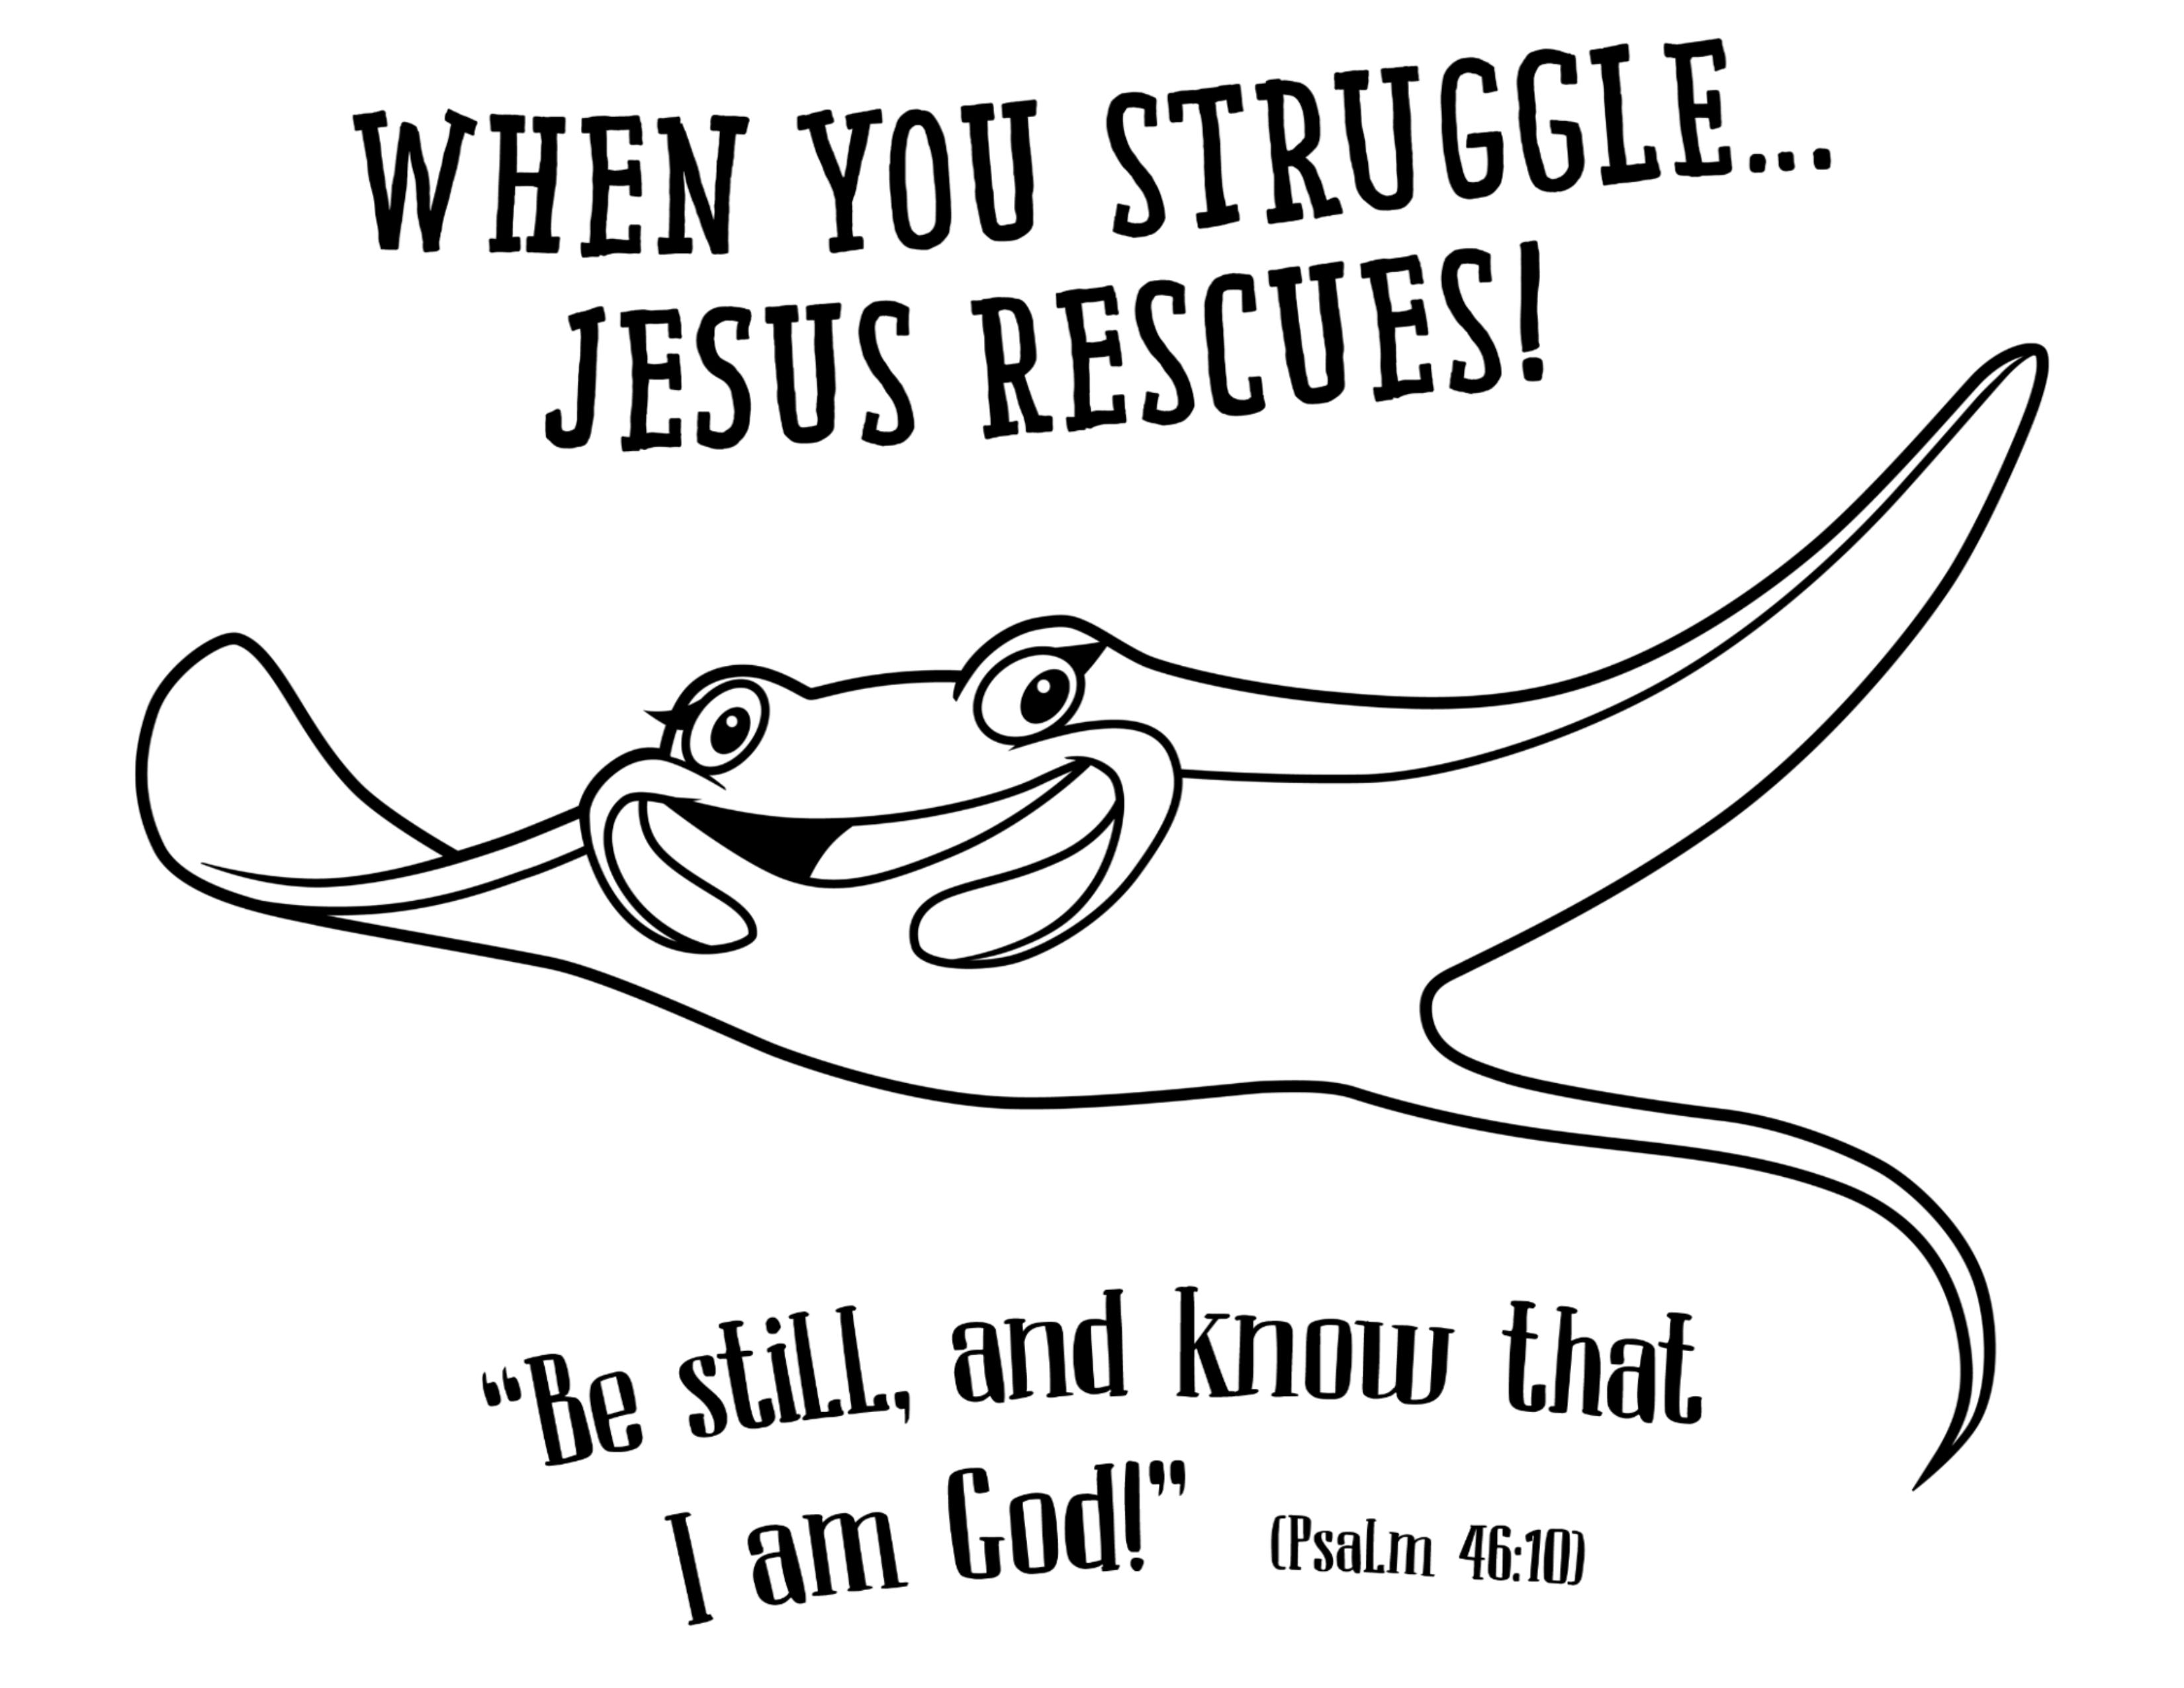 vbs coloring pages - shipwrecked coloring page rae shipwrecked vbs 2018